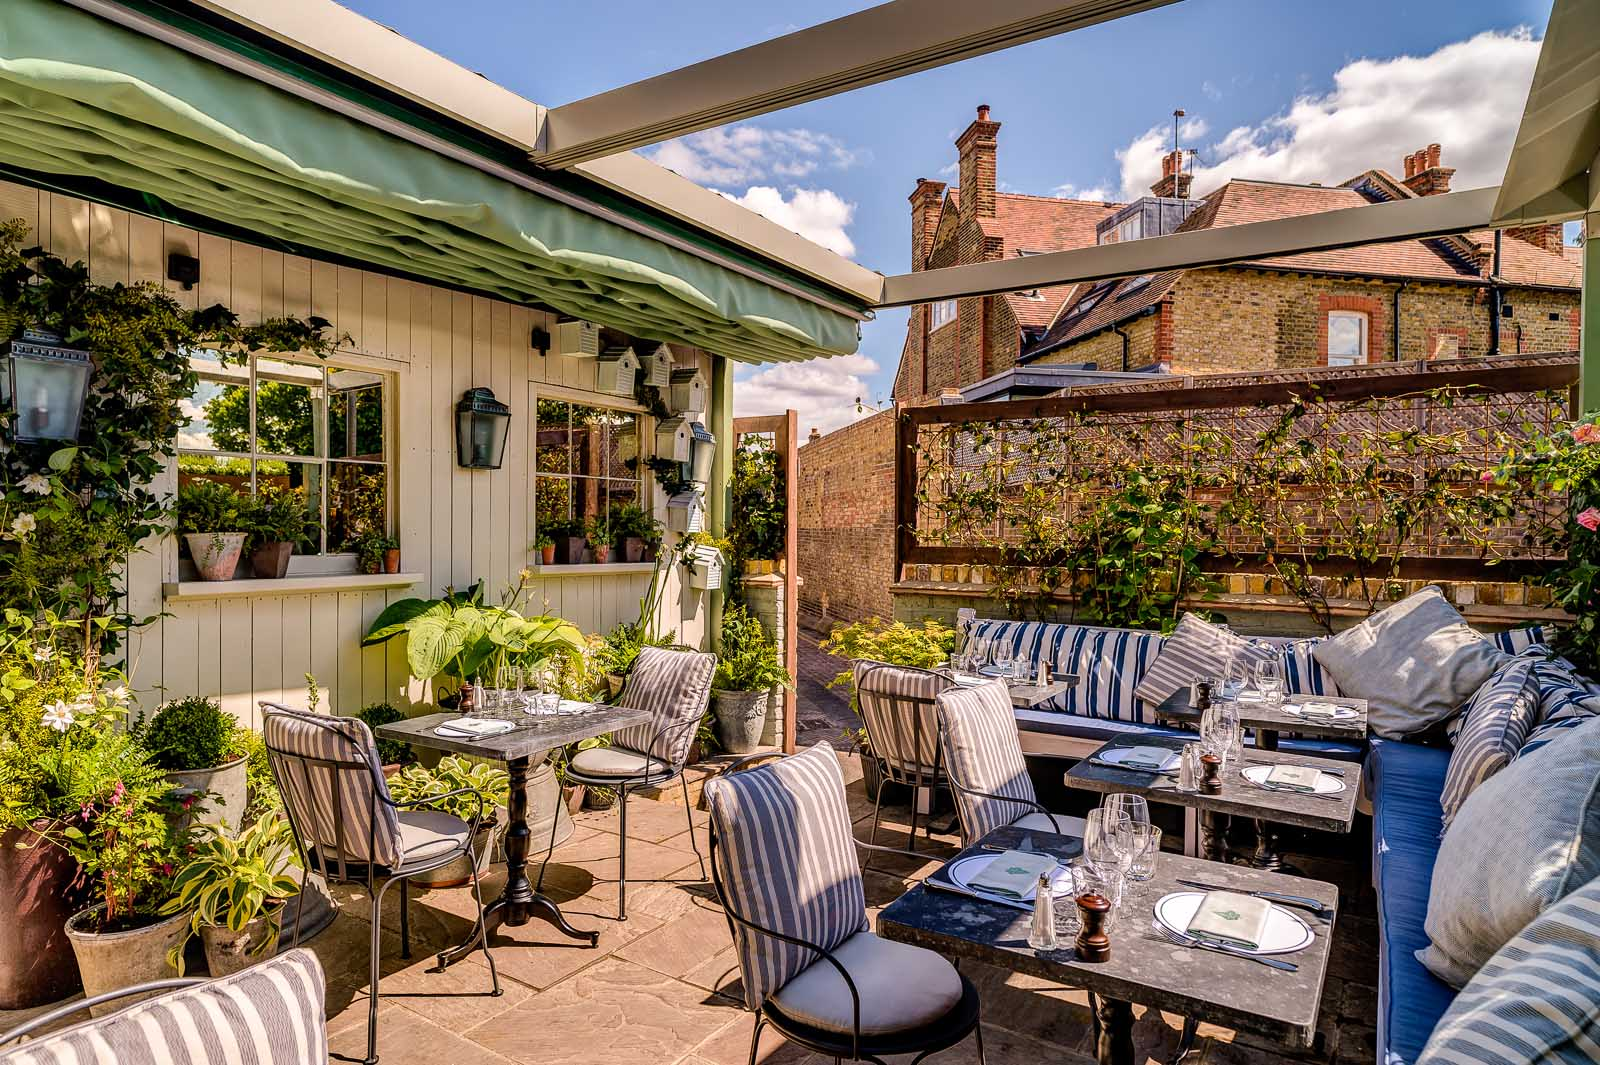 AL-FRESCO-DINING-IN-WIMBLEDON-THE-IVY-CAFE - The Ivy Cafe Wimbledon